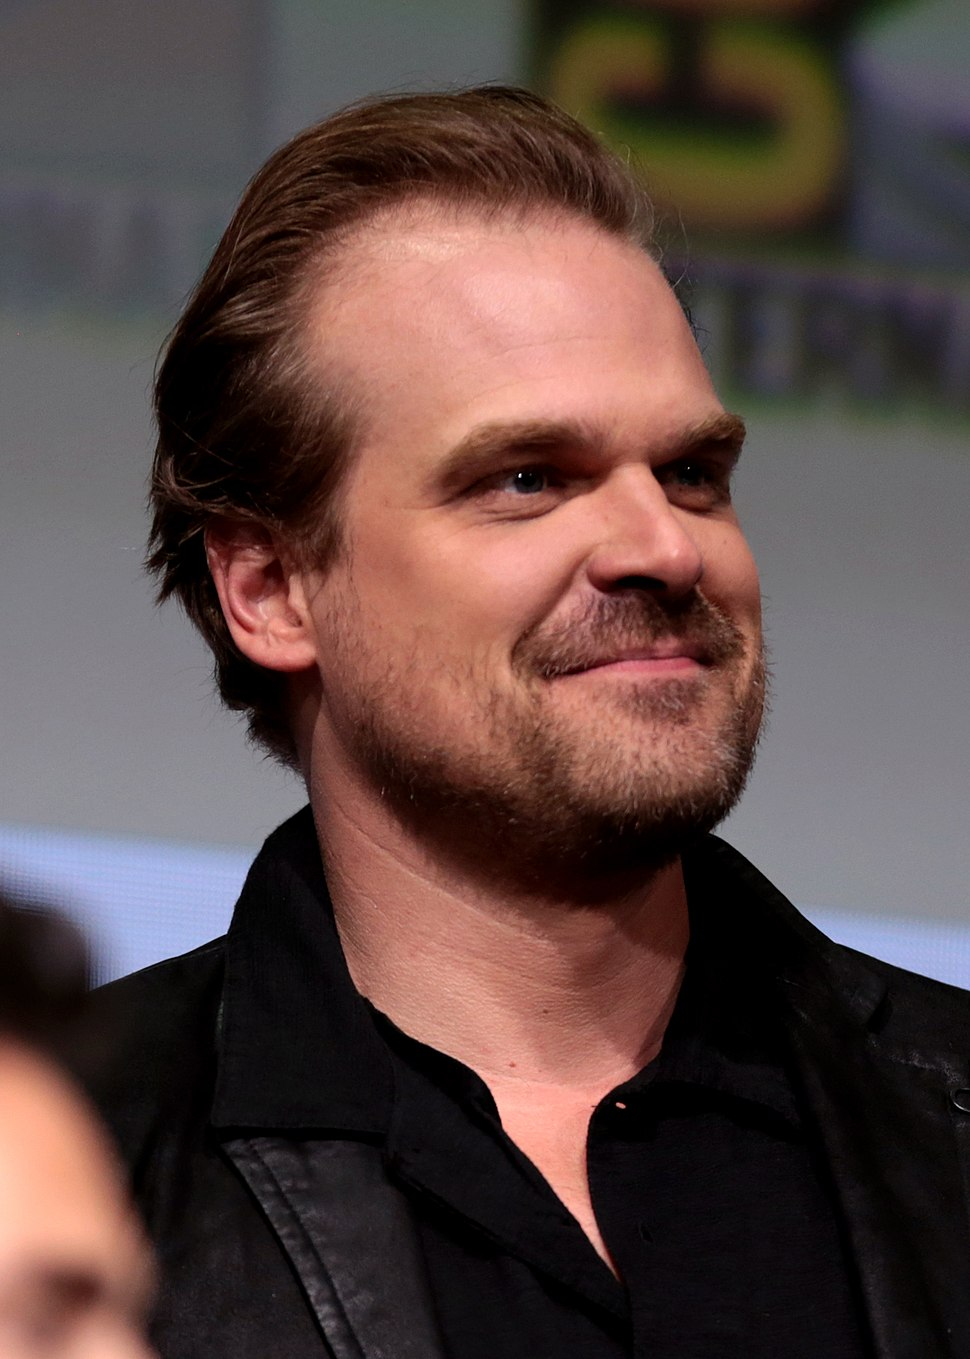 David Harbour by Gage Skidmore